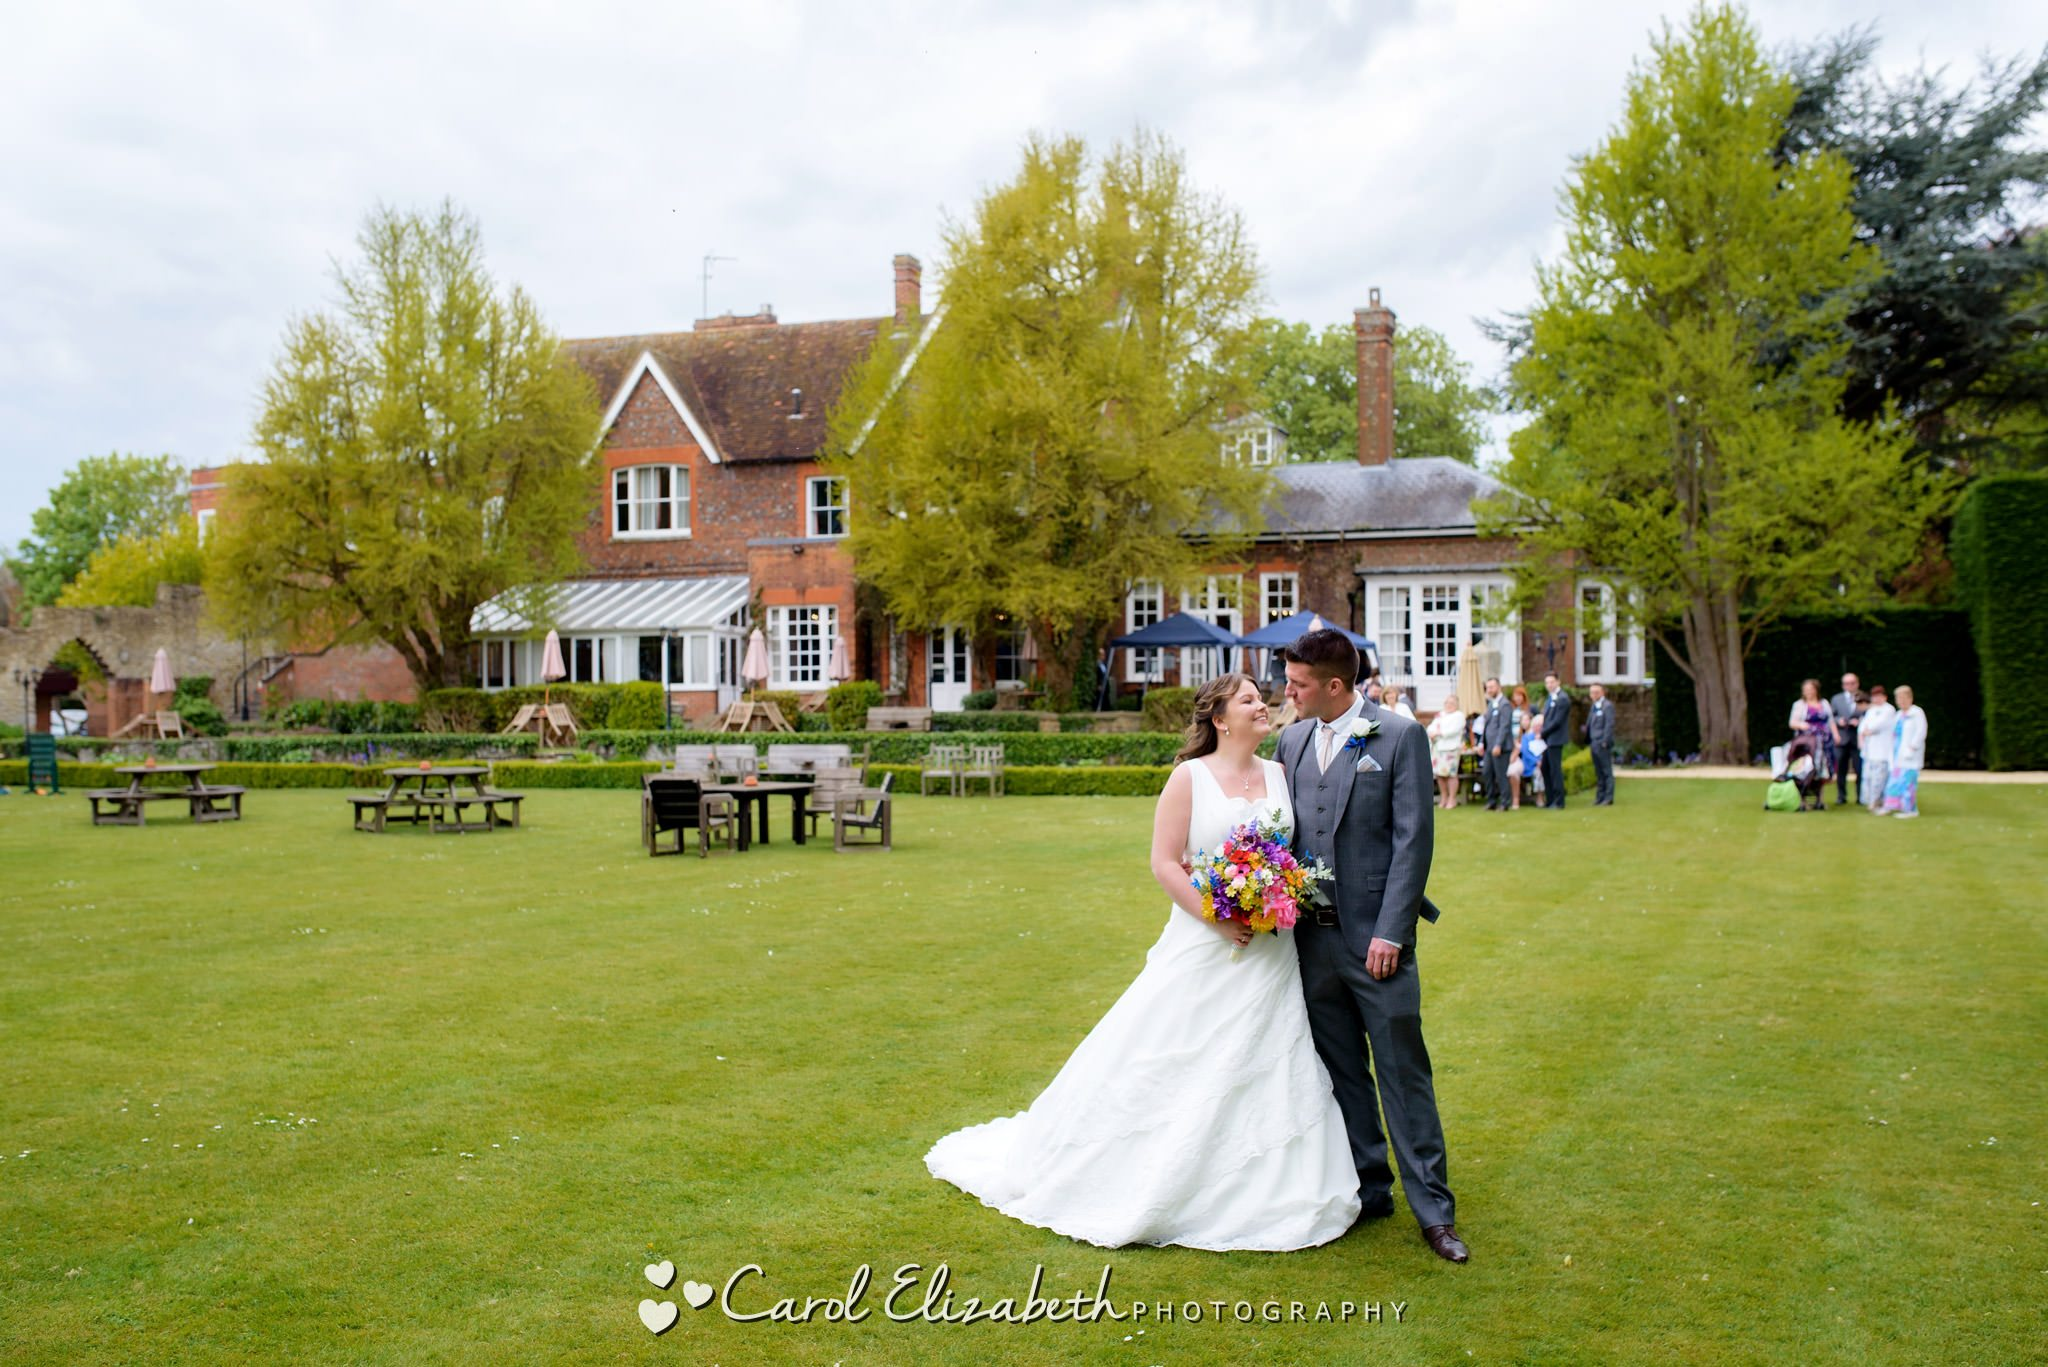 Coseners House wedding photographer in Abingdon